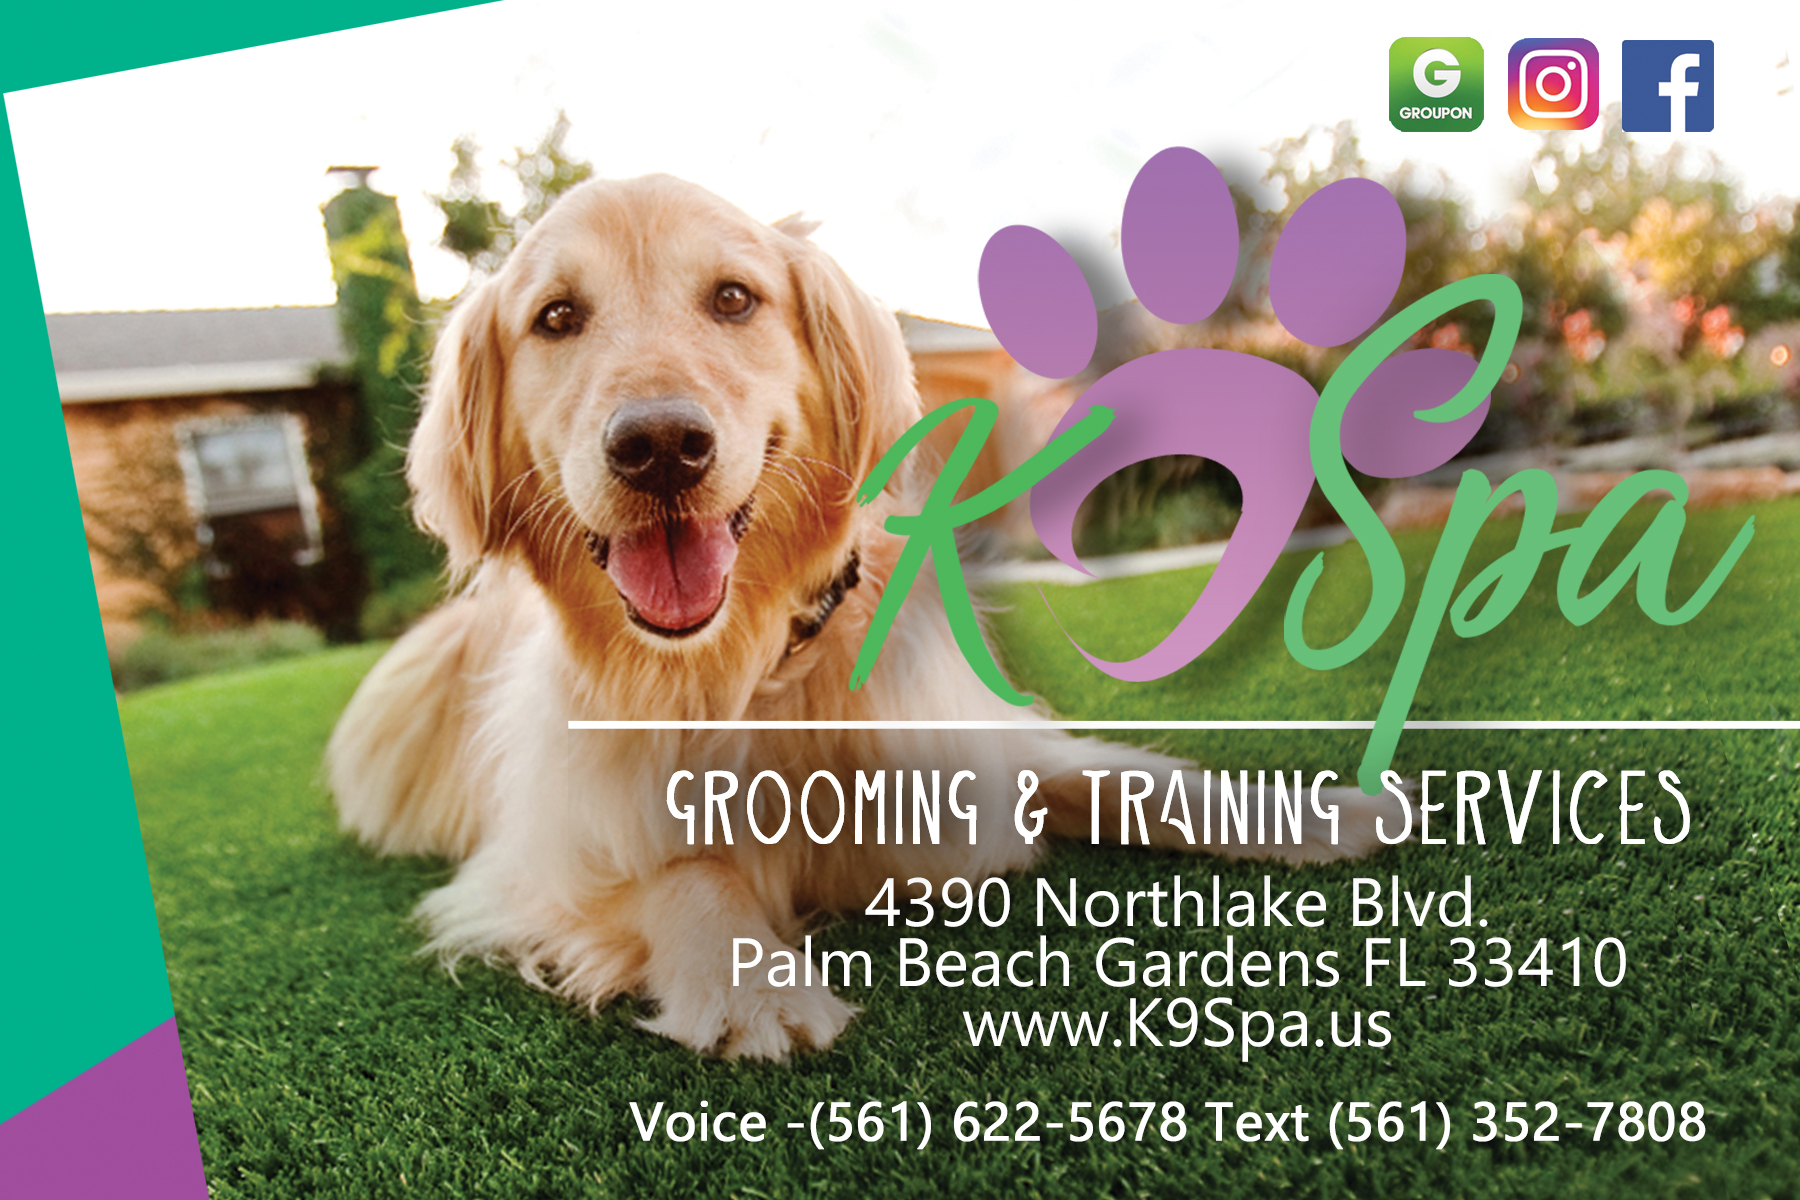 K9 Spa New Customer Promo Code CLEANUP